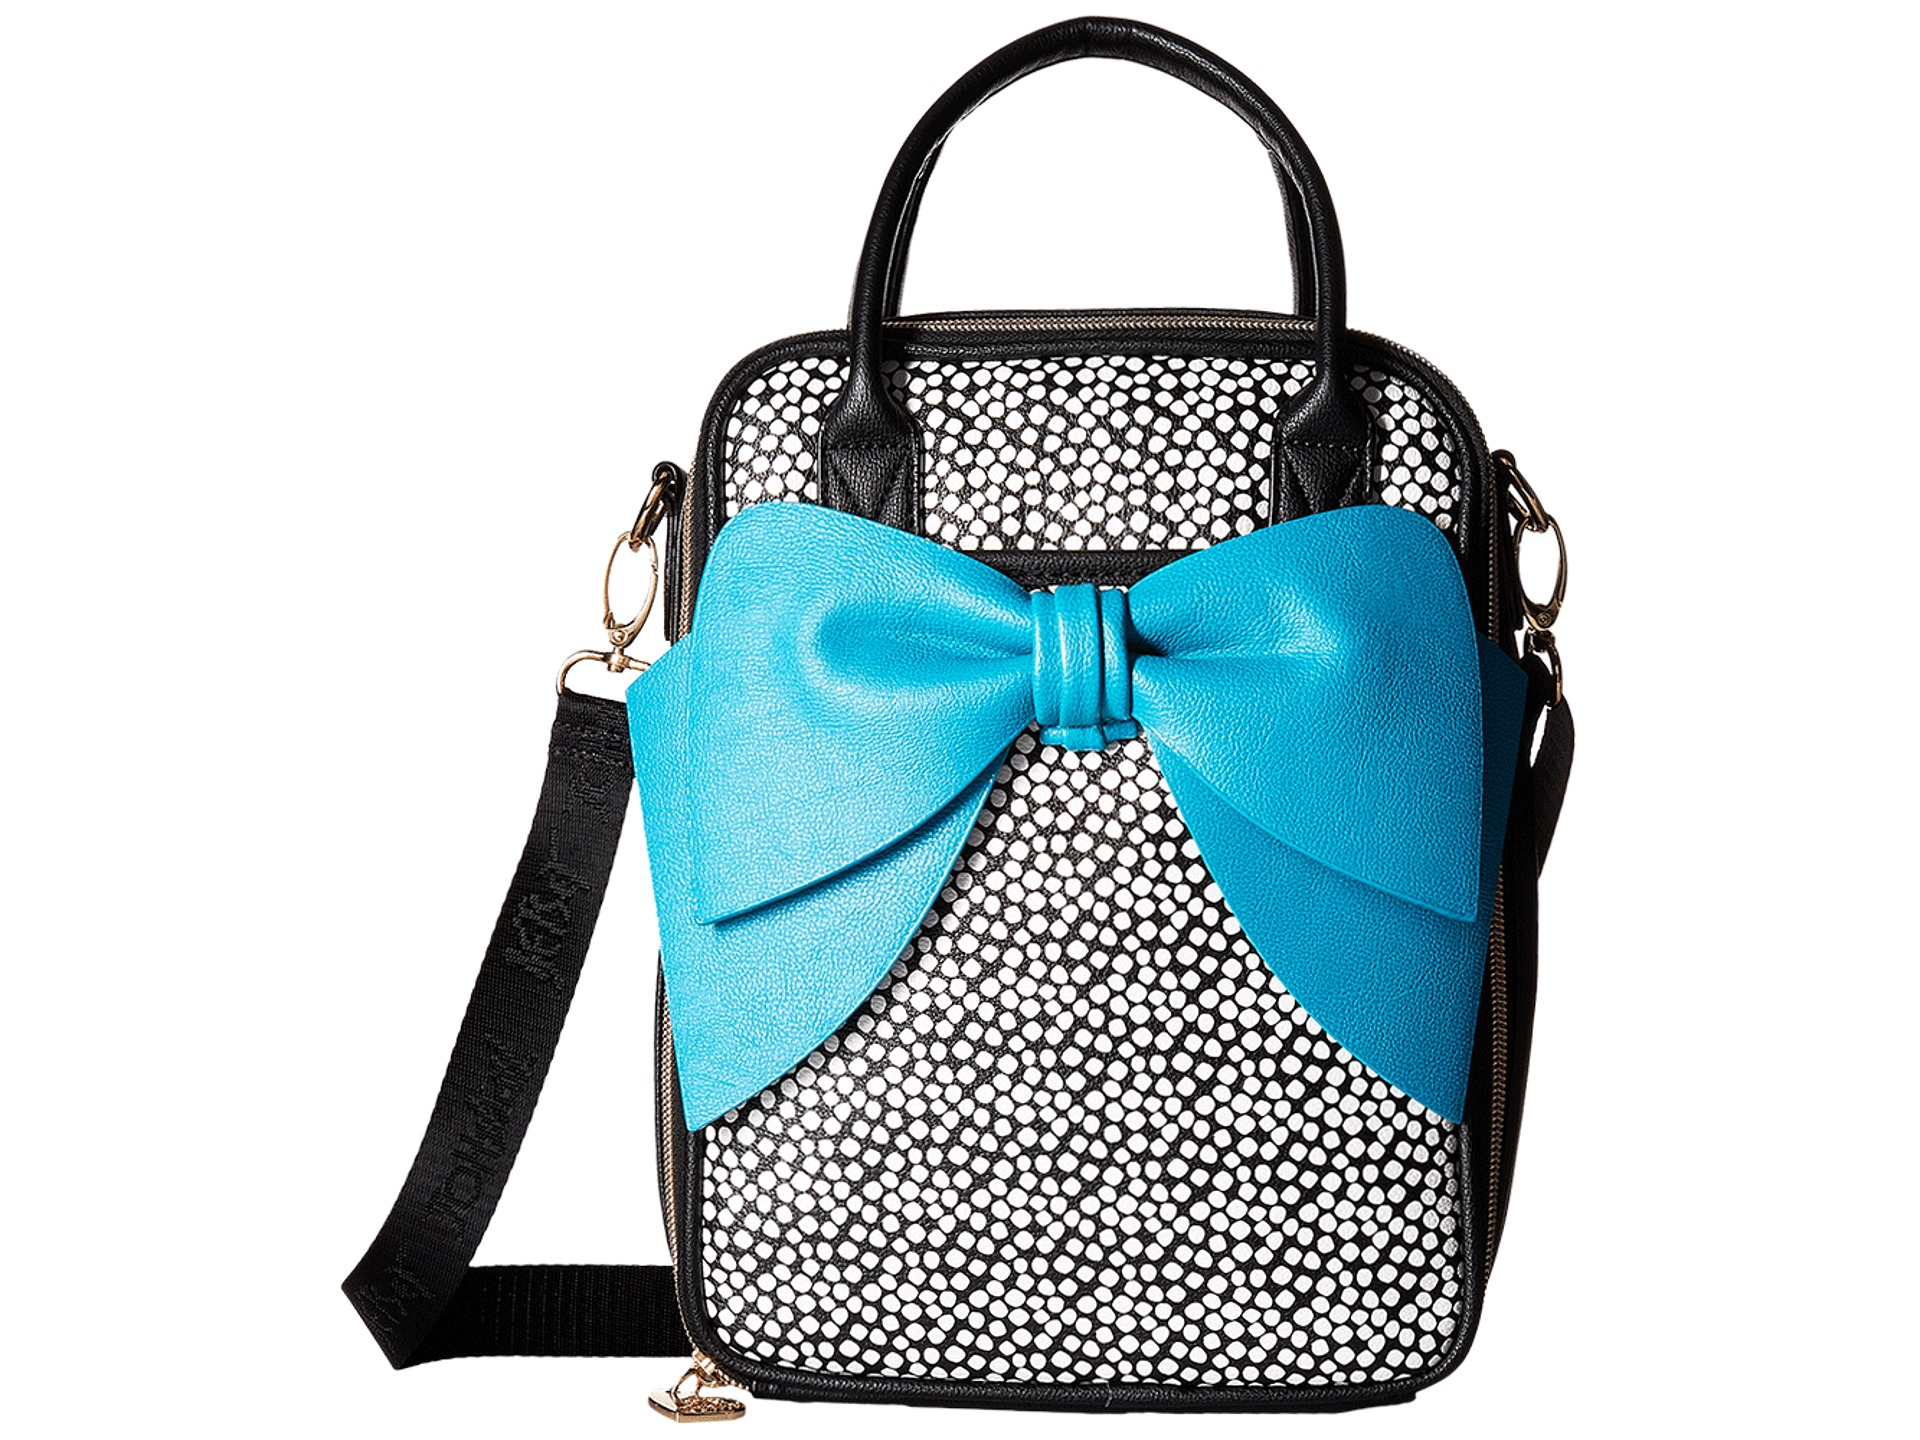 Betsey Johnson Bow Chow Bella Lunch Tote At Zappos Com